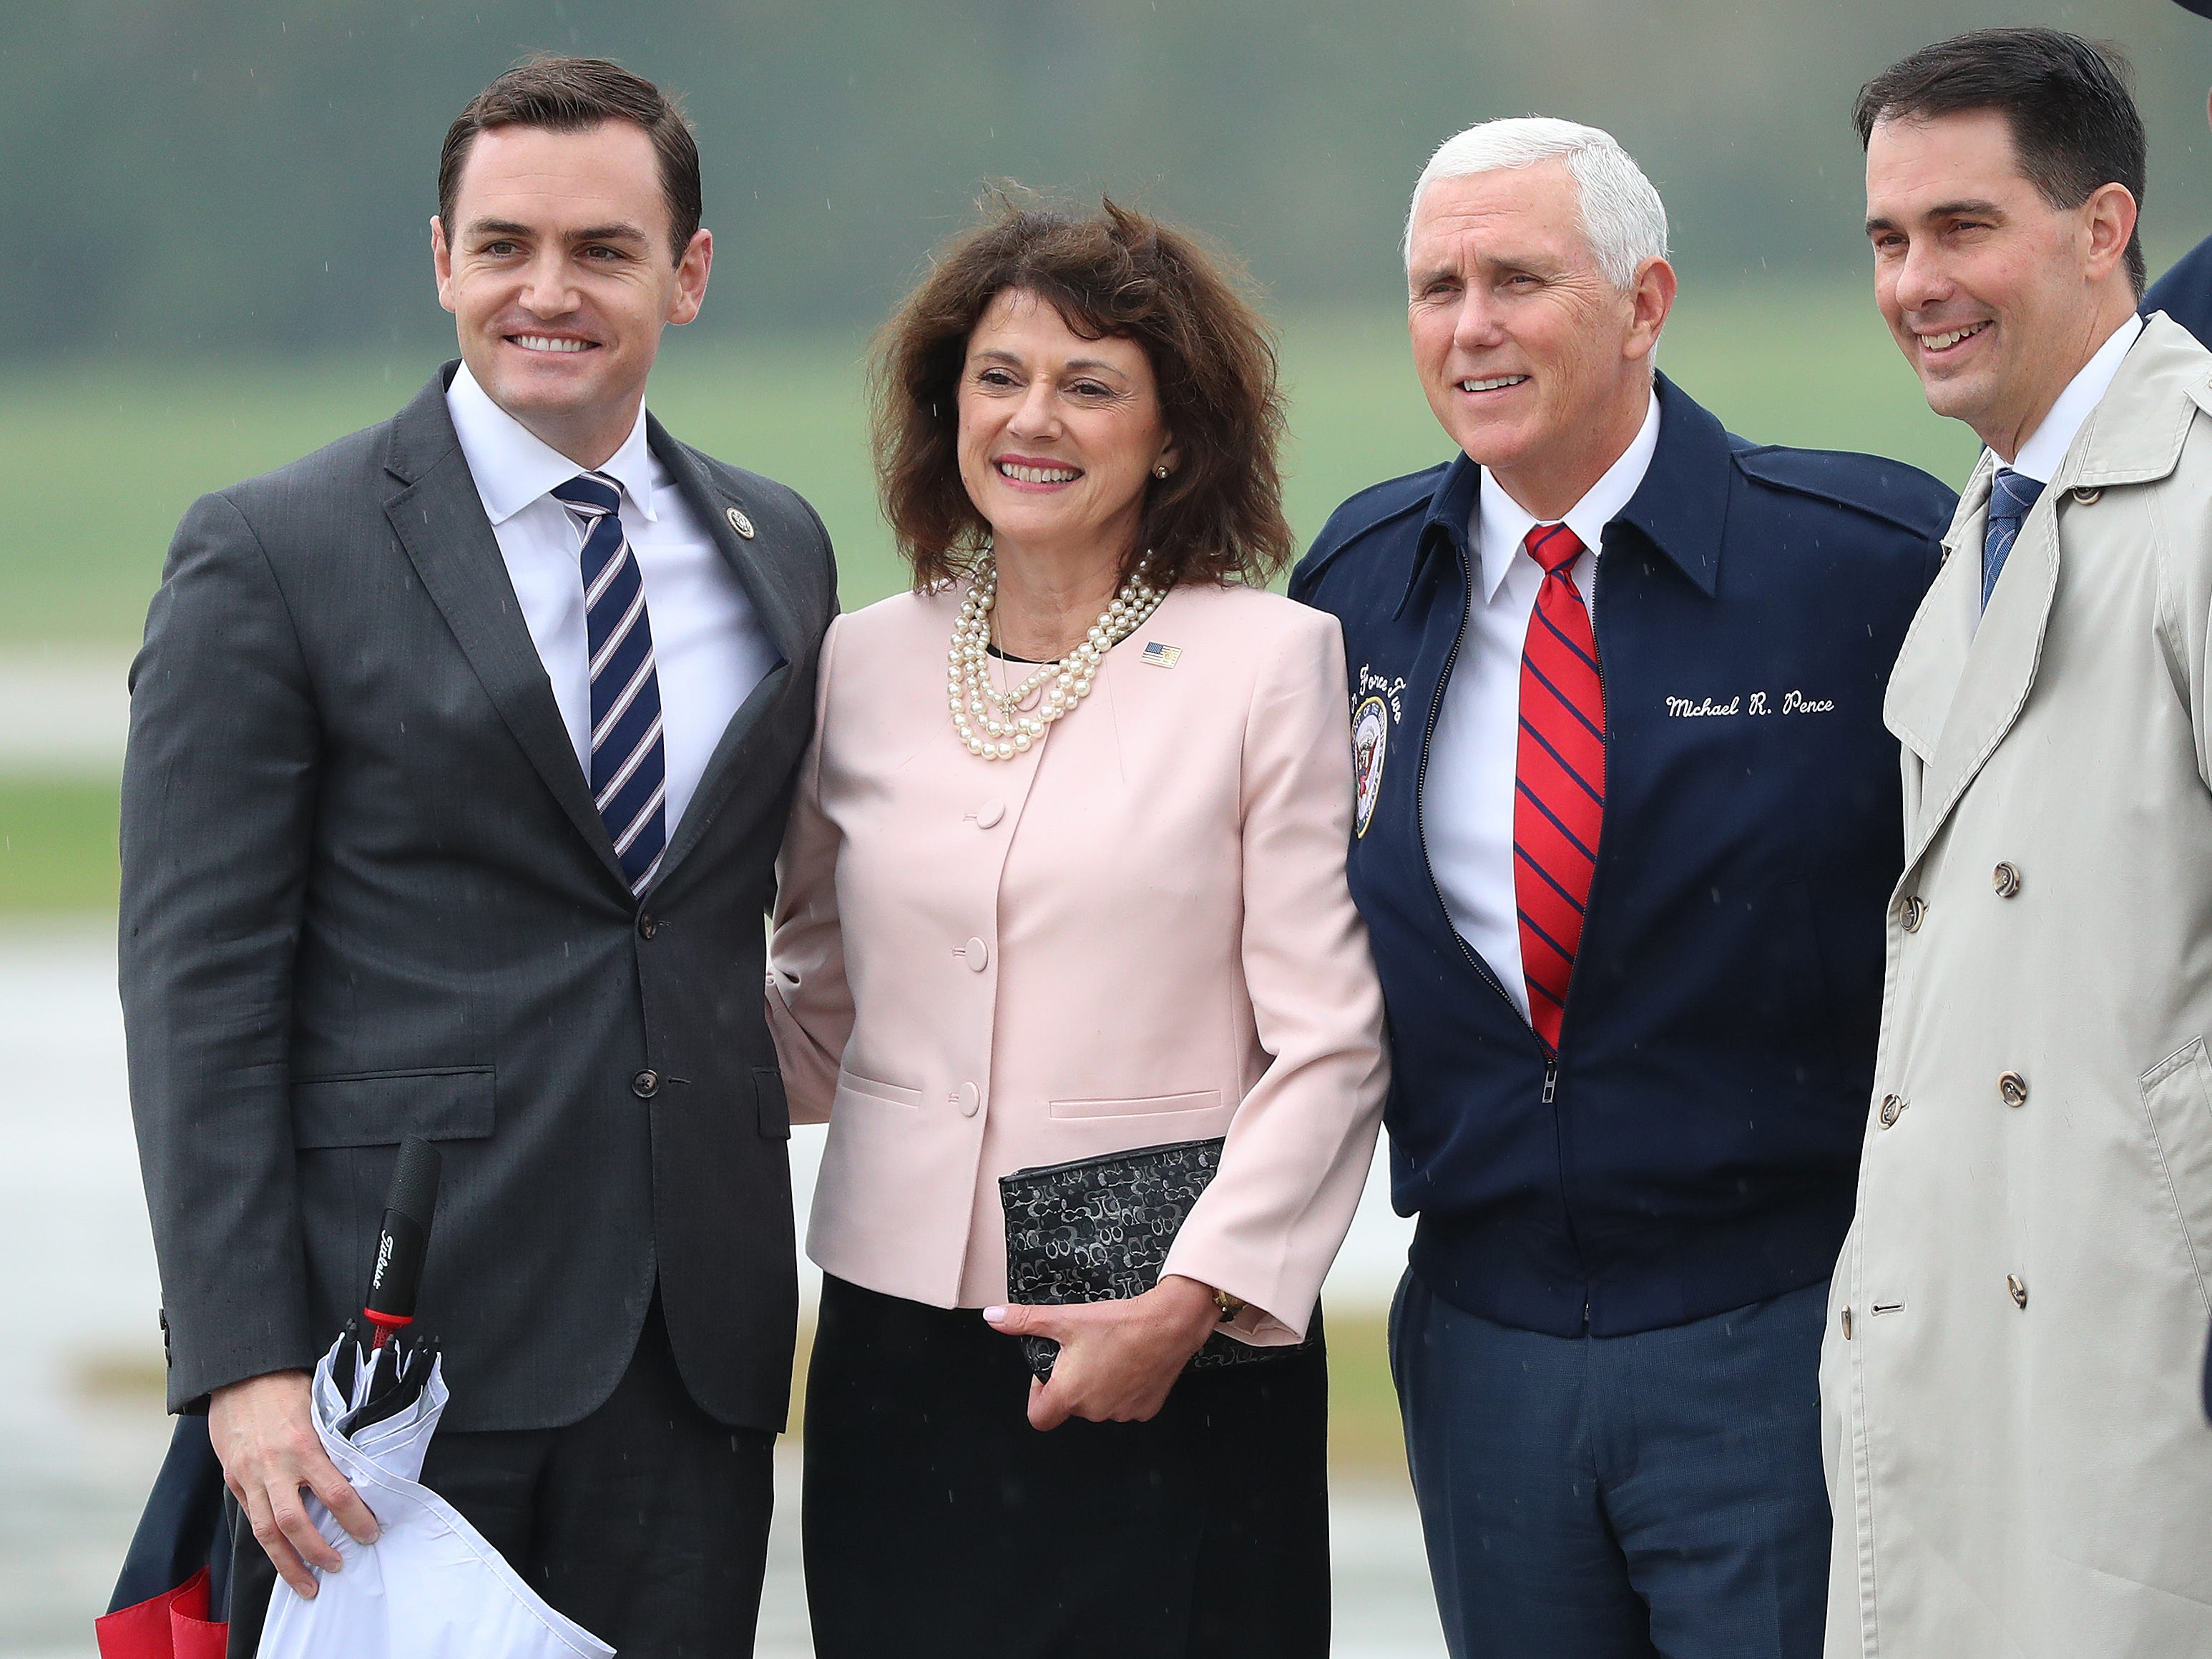 Vice President Mike Pence is flanked by  (from left) U.S. Rep. Mike Gallagher,  U.S. Senate candidate Leah Vukmir and Gov. Scott Walker on Wednesday, October 10, 2018,at Green Bay's Austin Straubel International Airport.